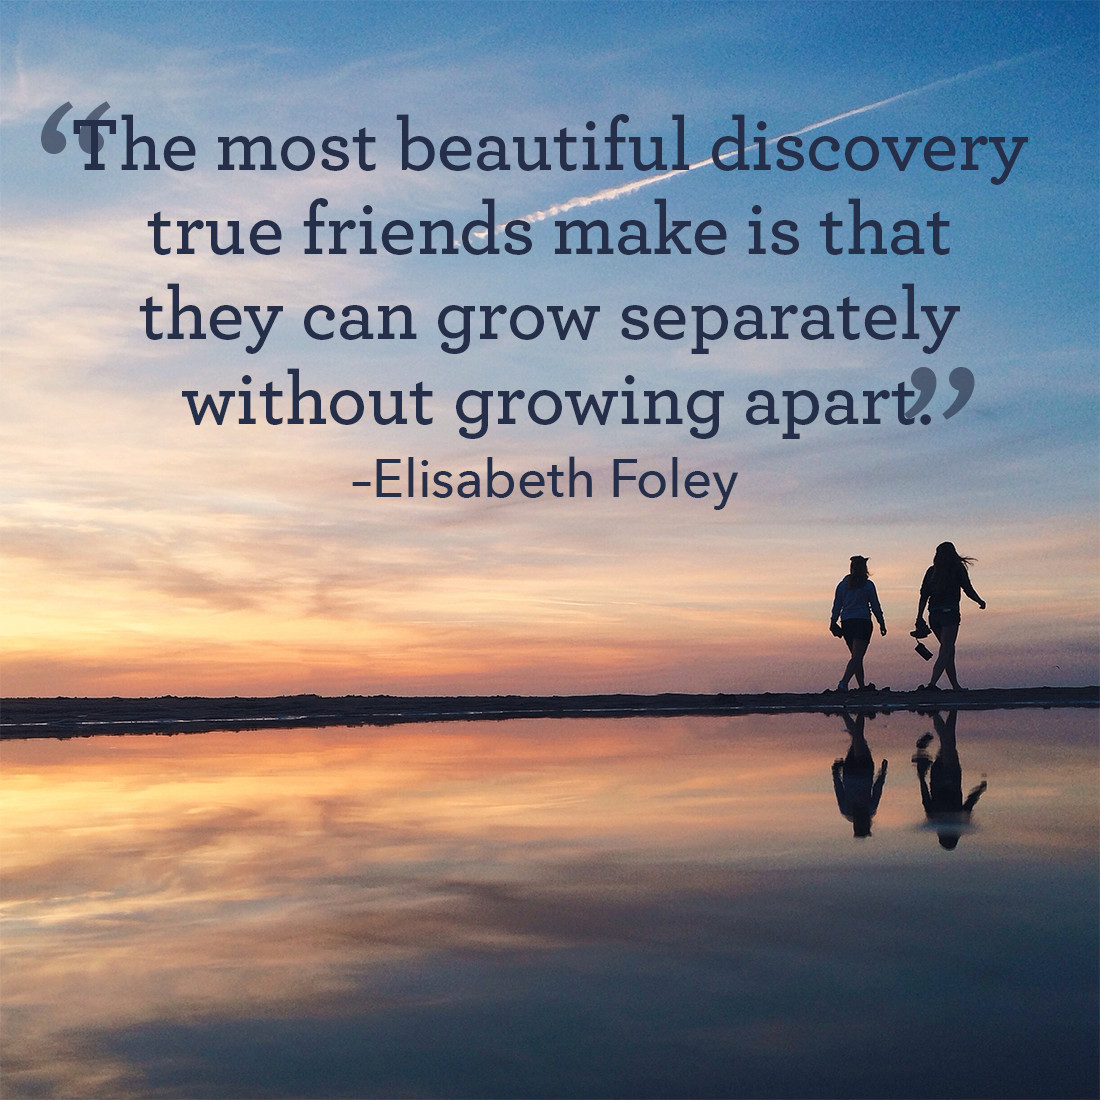 Quotes About Friendship - Quotes About Family